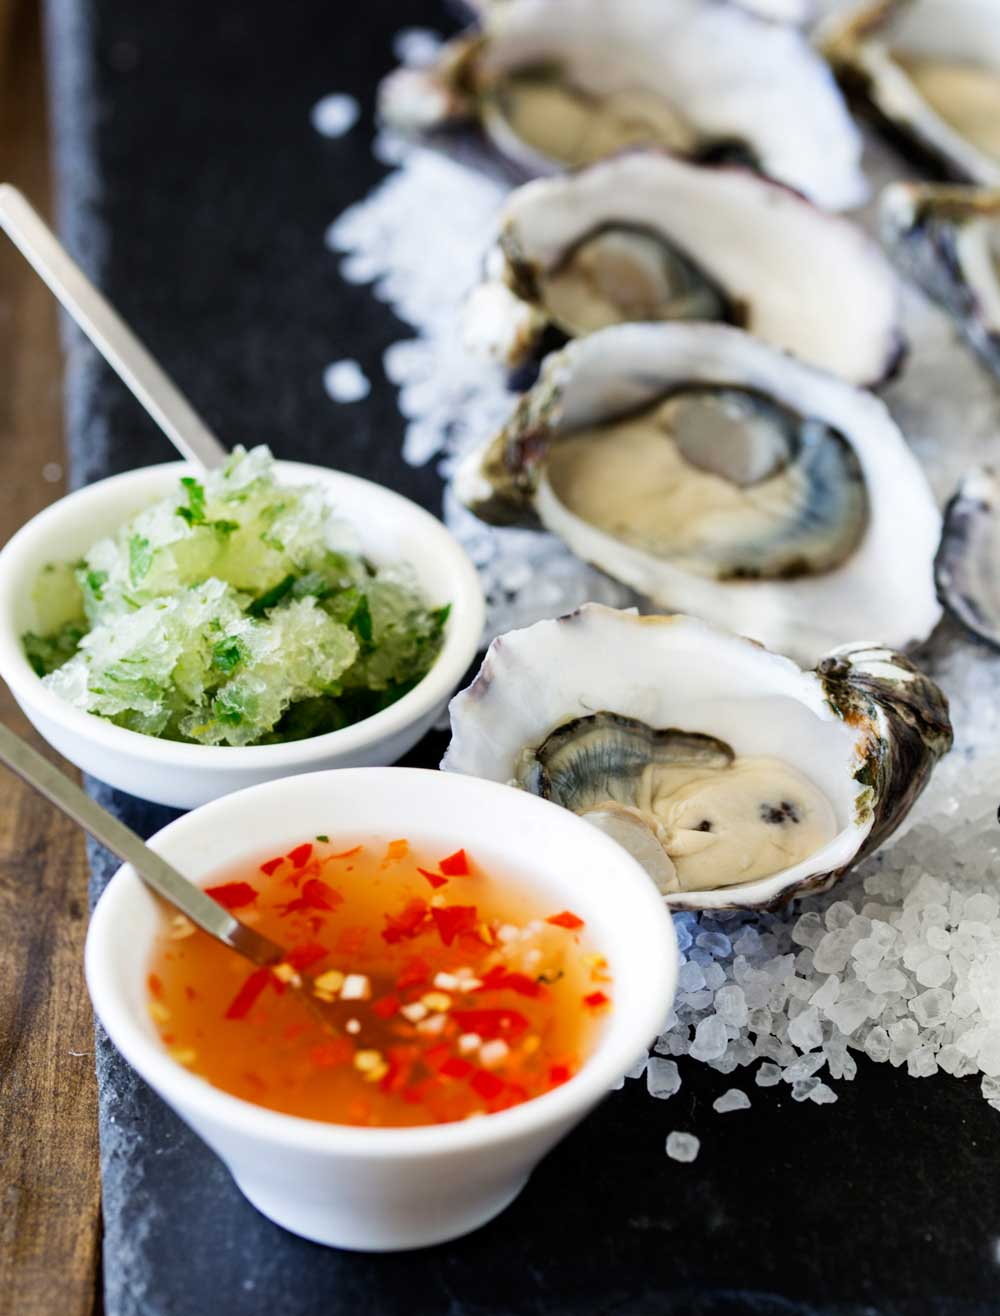 These Thai oysters are dressed with a sweet and spicy dressing and then topped with a cooling salty sour granita. The perfect balance of flavours. If you love oysters then I know you will love these babies!